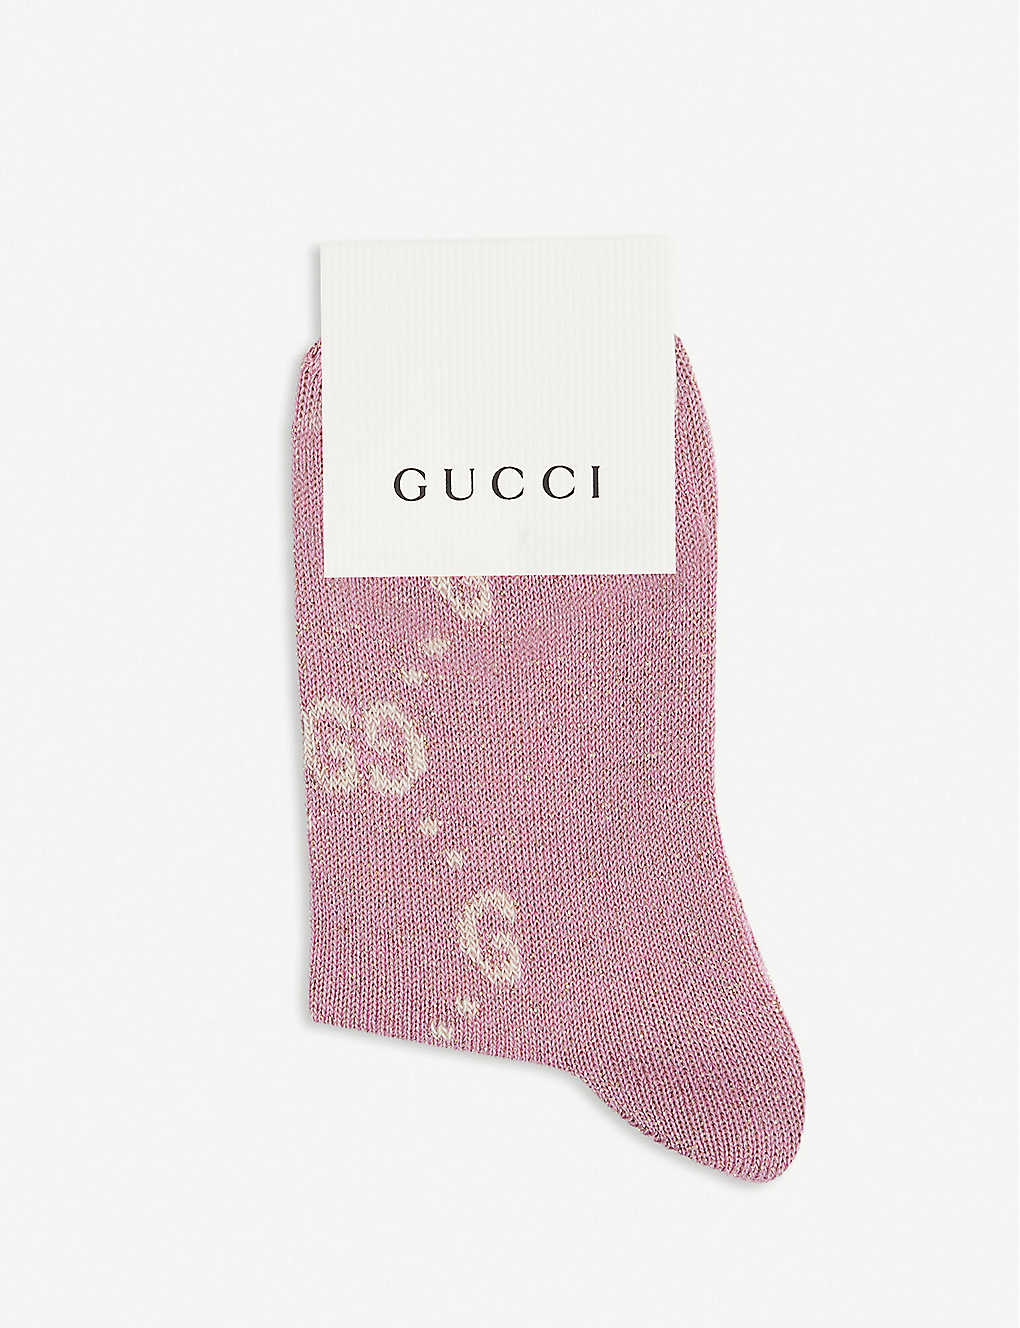 GUCCI: Logo-embroidered cotton-blend knee-high socks 0-4 years